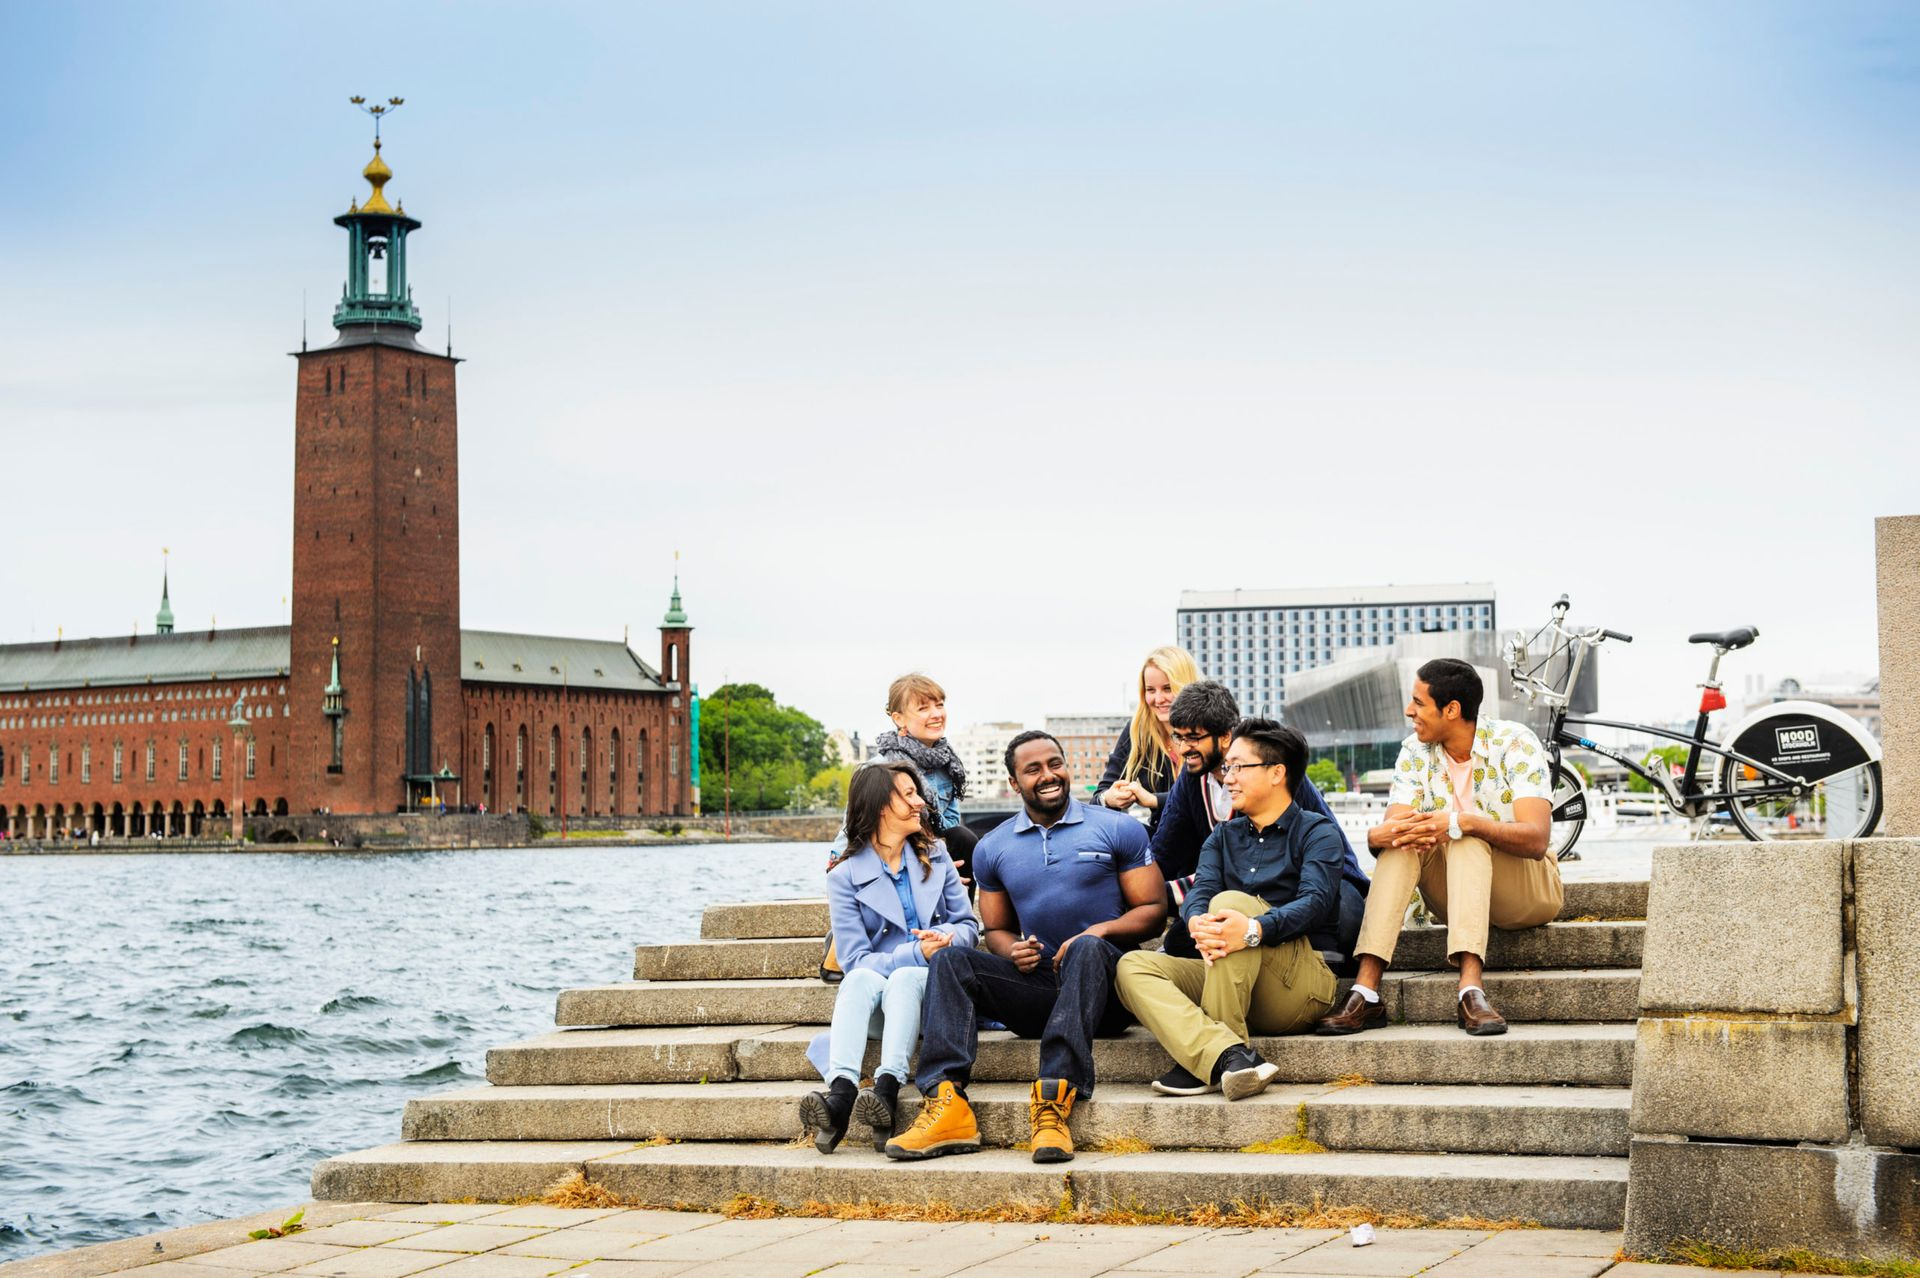 A group of international students sitting on steps outside. The Stockholm city hall is in the background.